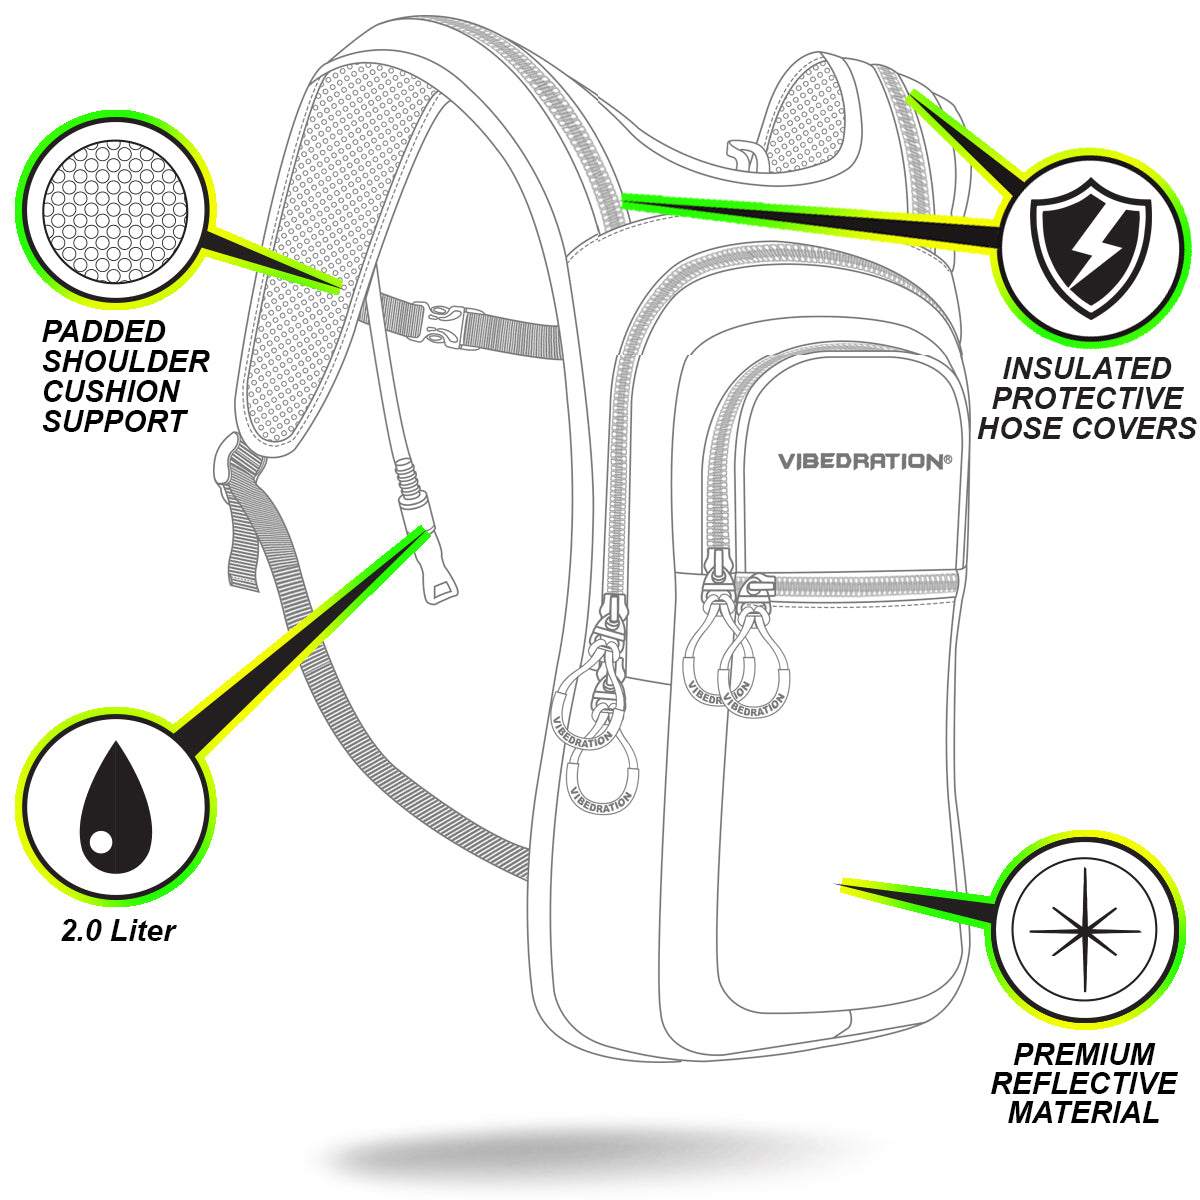 Padded should support of VIP 2.0L Festival Hydration Pack Description Image